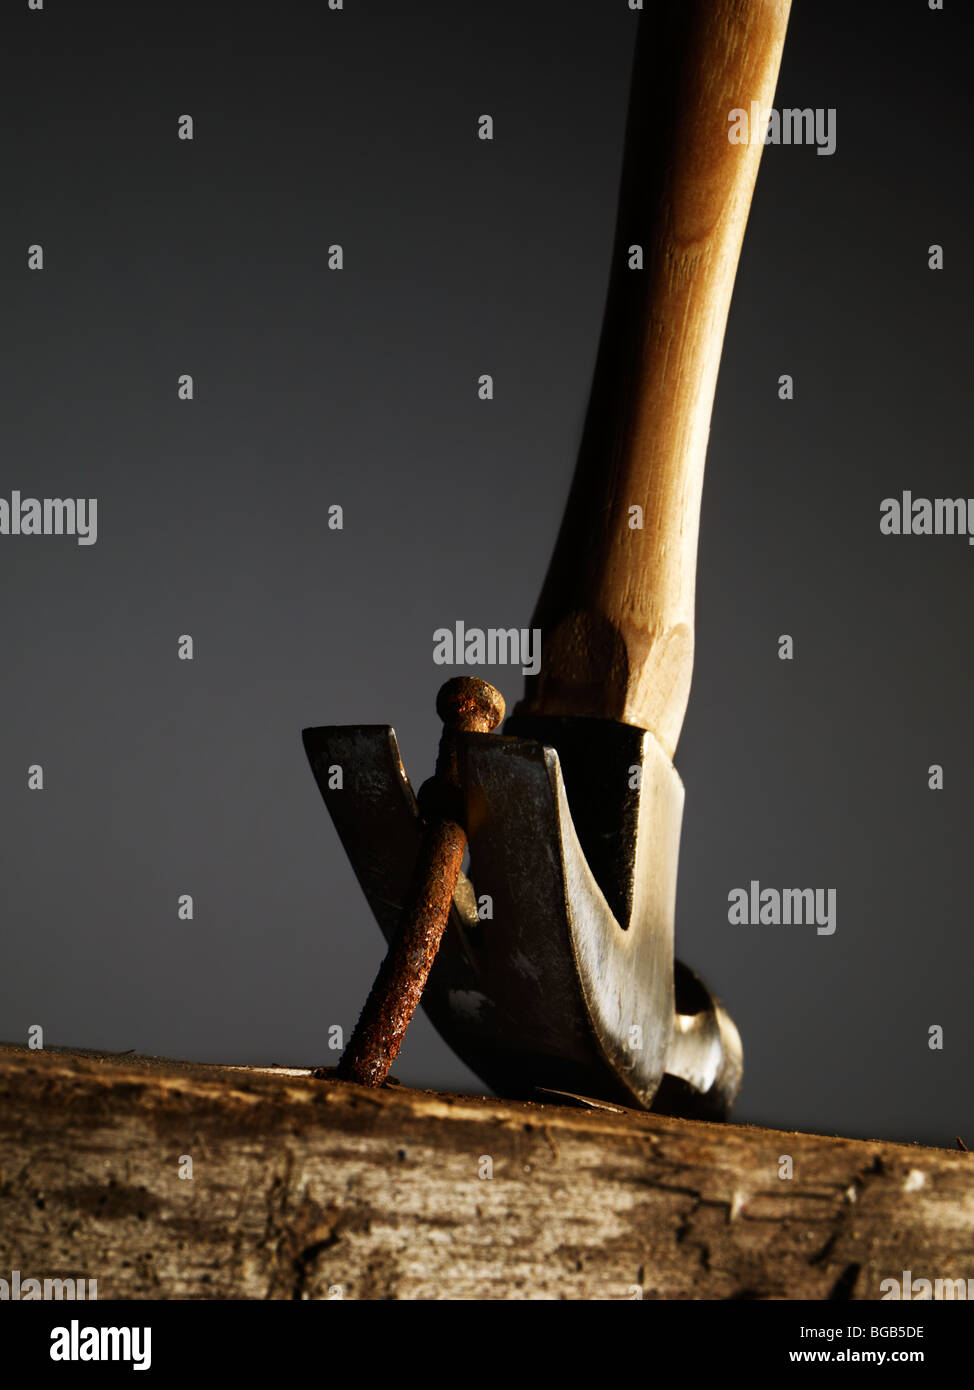 Hammer Removing A Nail From A Old Wooden Surface - Stock Image